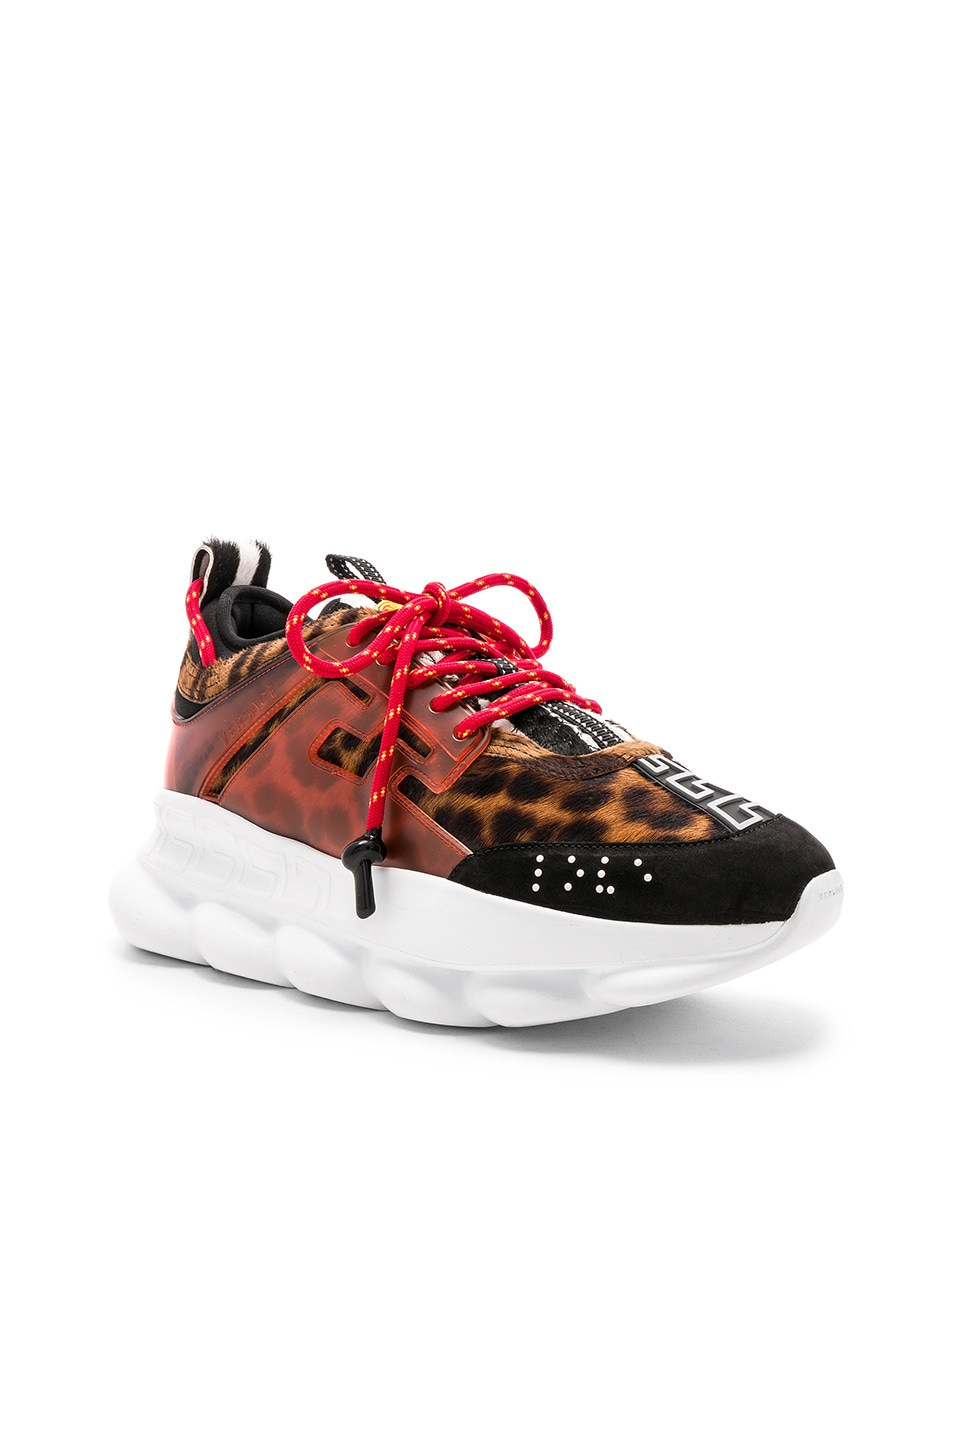 Image 1 of VERSACE Calf Hair Chain Reaction Sneakers in Black & Red Print